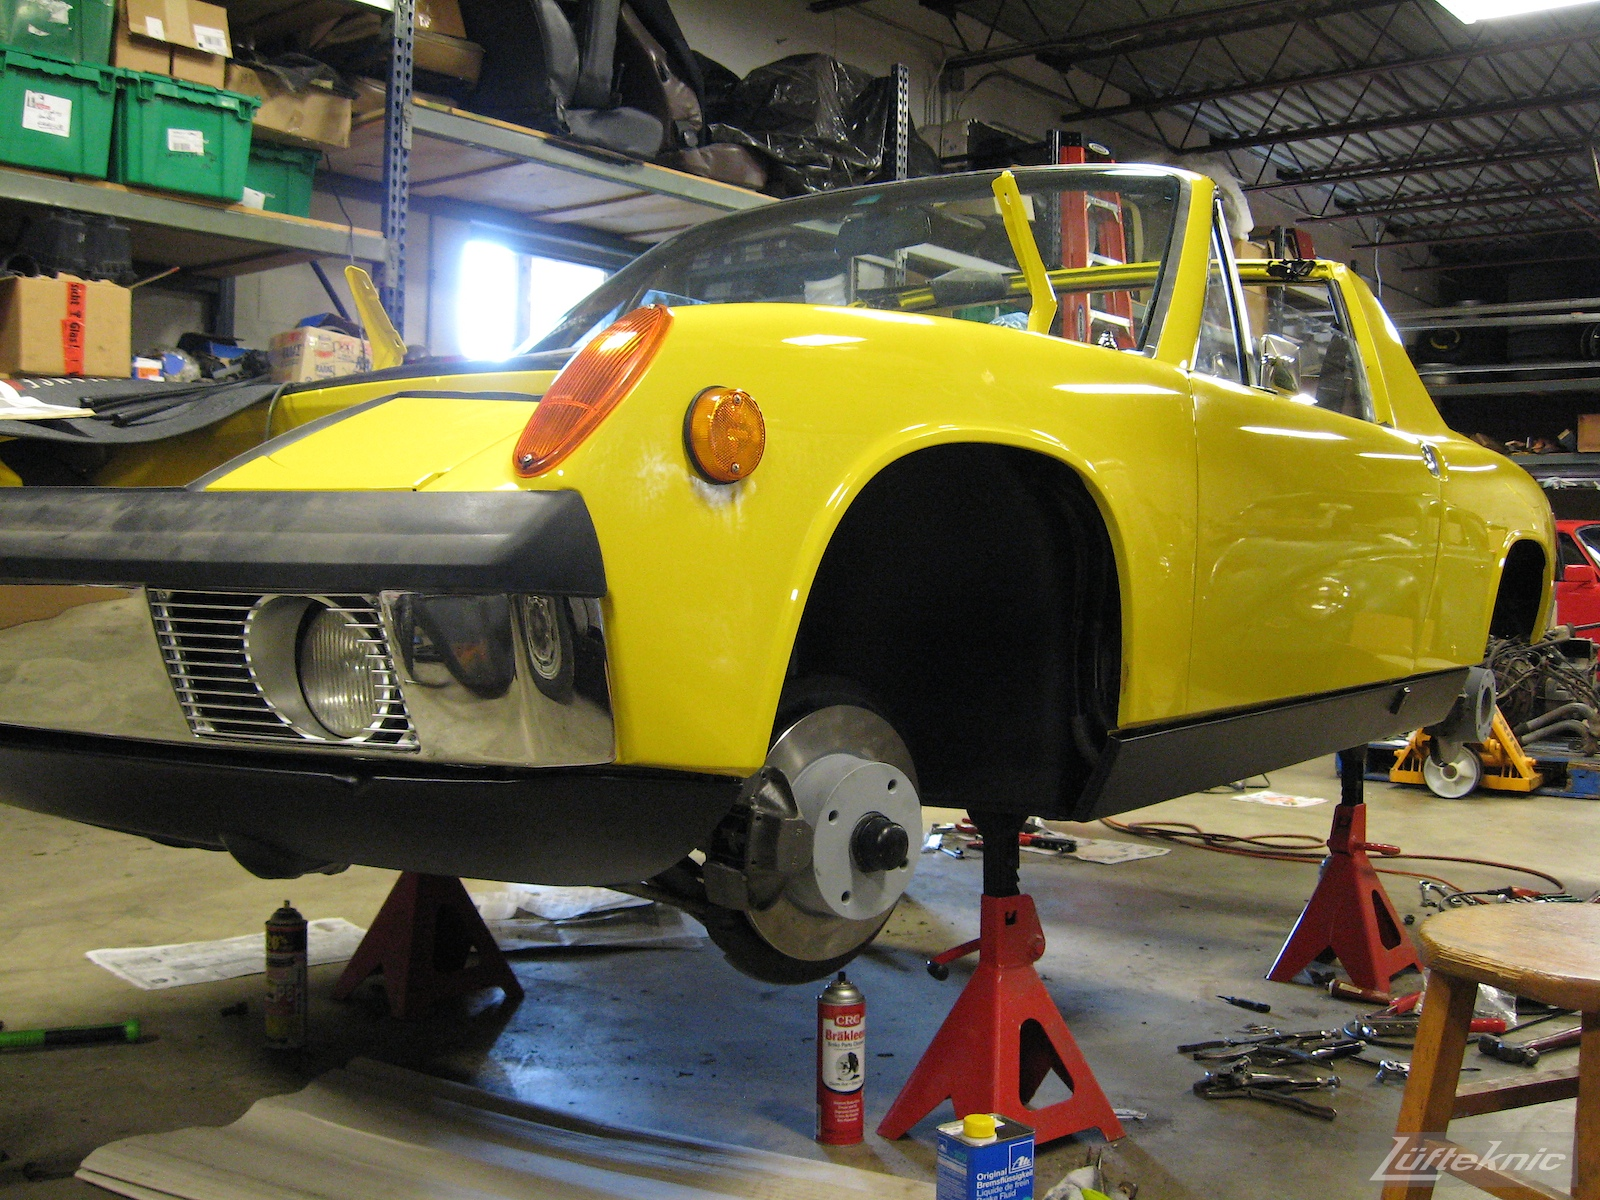 Front shot of a mostly complete restored yellow Porsche 914 at Lufteknic.